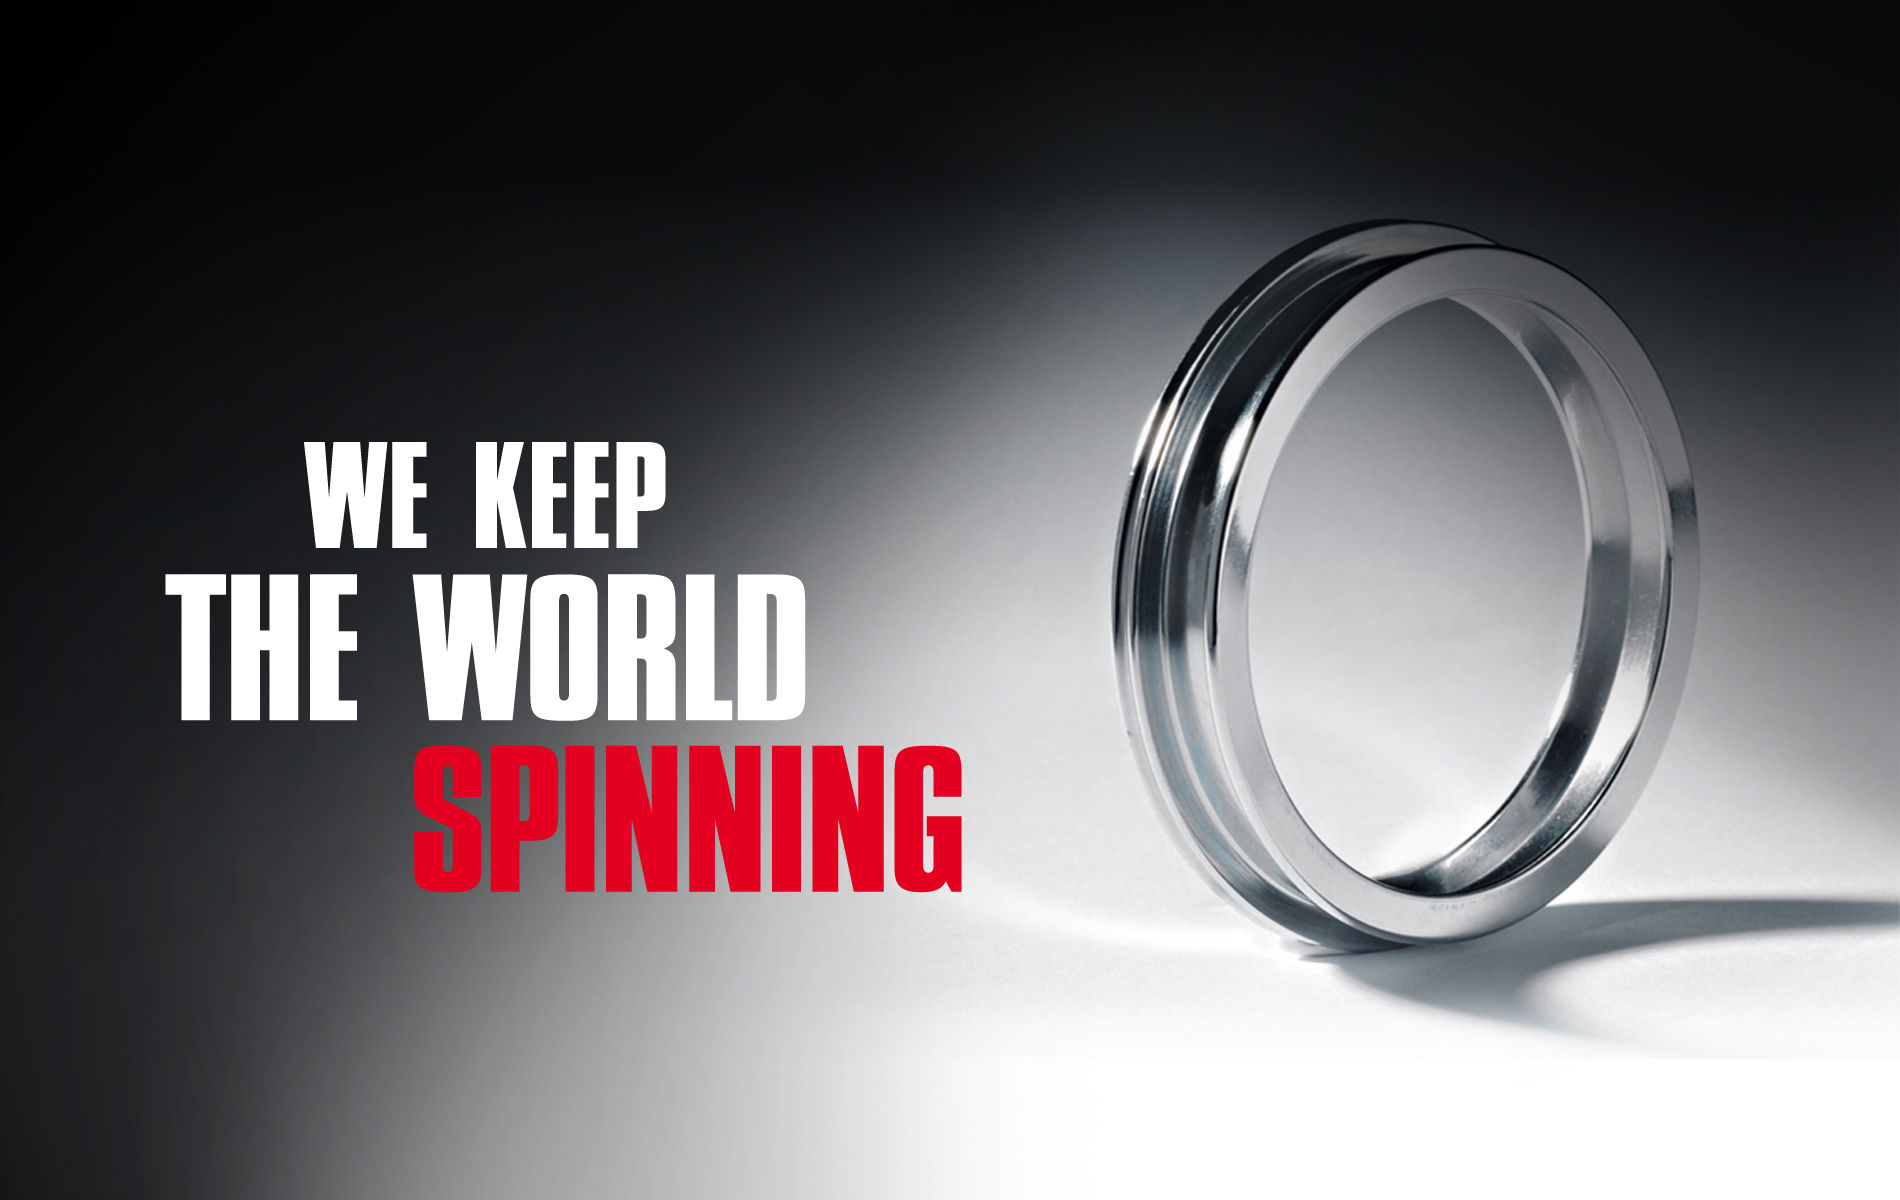 prosino borgosesia rings we keep the world spinning